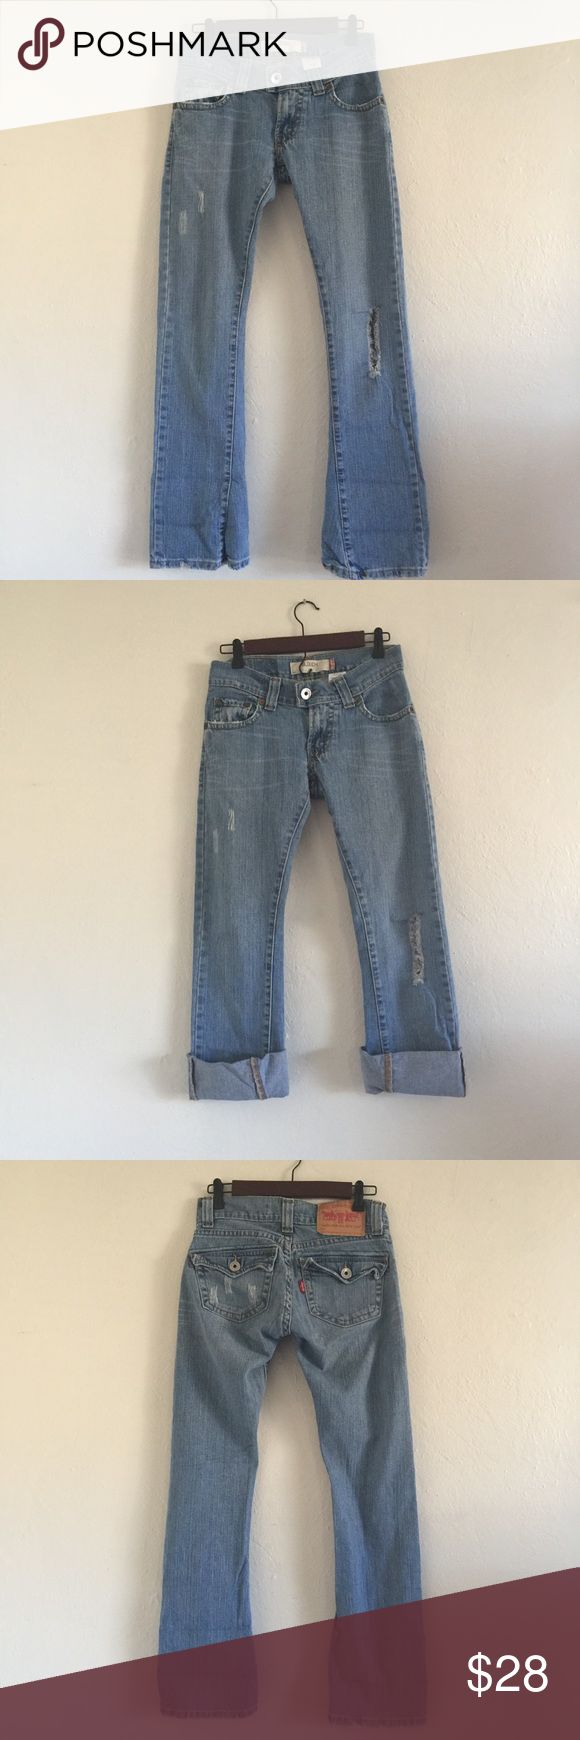 Levi 504 destroyed slouch jeans 3 Excellent condition worn once as crops! 99% cotton 1% spandex 15.5 in waist flat 7.5 in rise inseam 31 in ankle measurement 8.5. Any questions please ask! Levi's Jeans Straight Leg